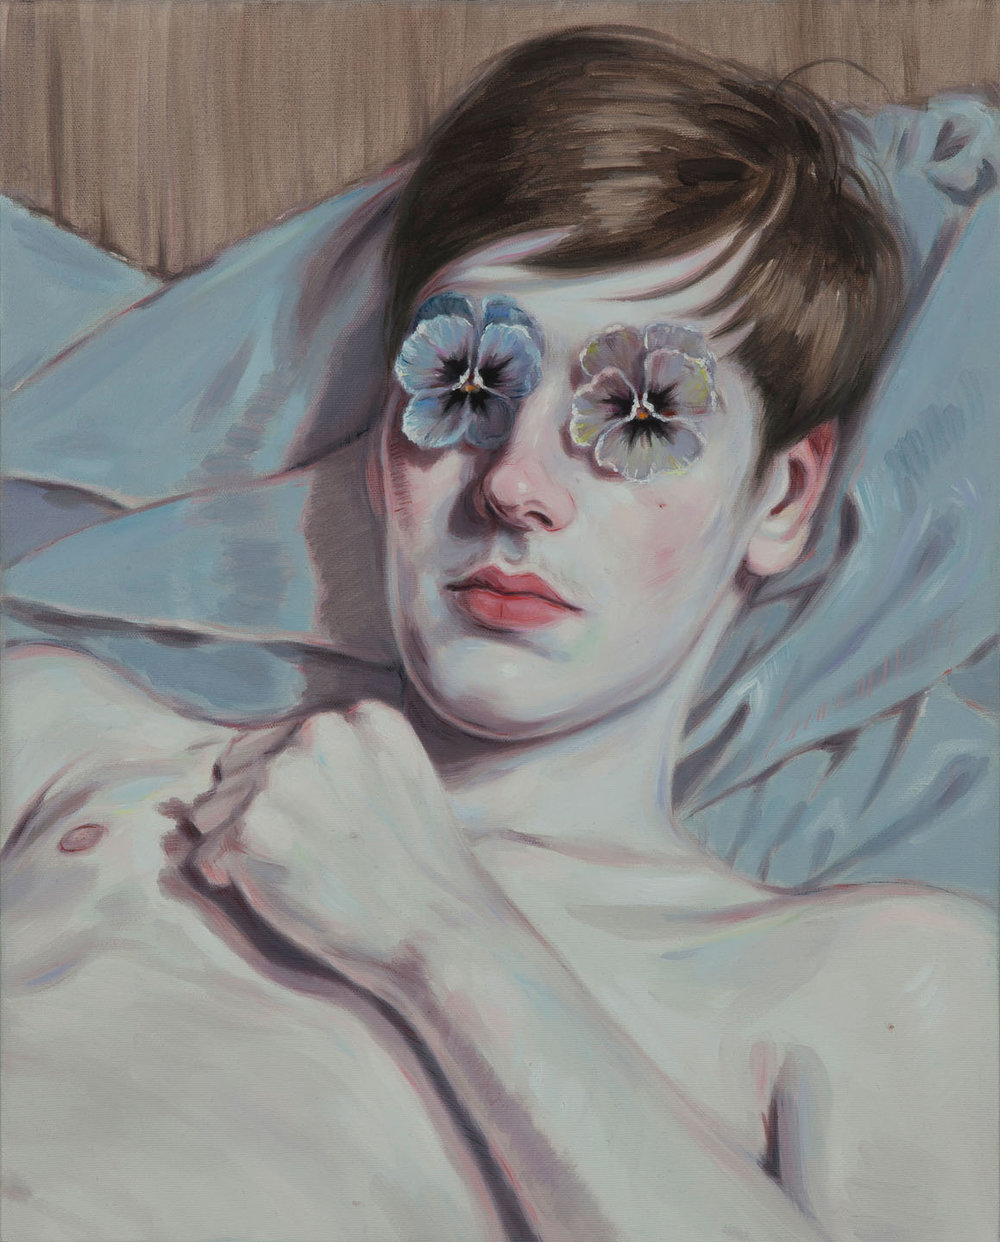 Kris Knight, Pansy, 2015, oil on canvas, 20 x 16 inches .